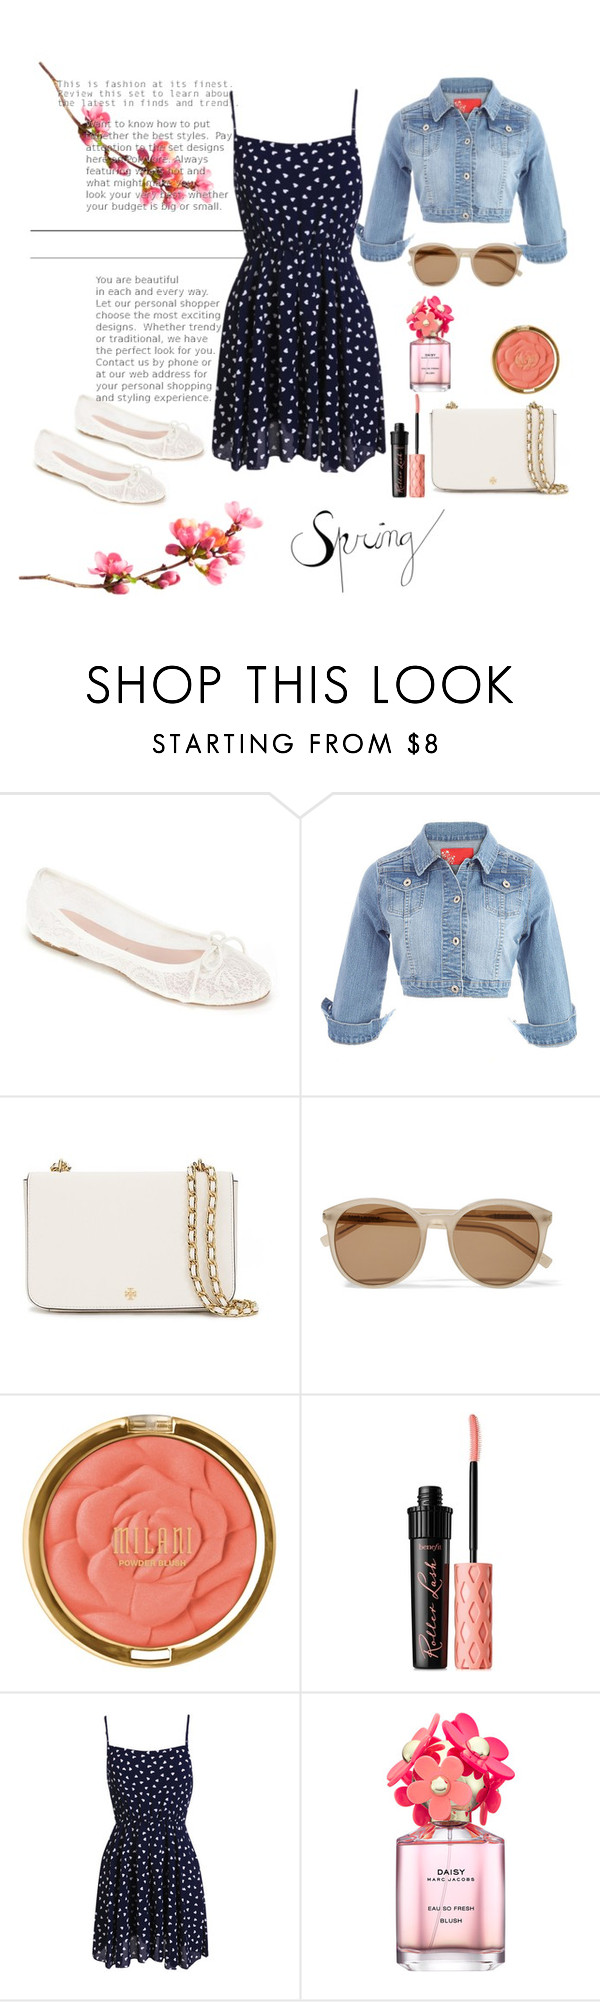 """""""flowers"""" by monni-go-al ❤ liked on Polyvore featuring Summit by White Mountain, Tory Burch, Yves Saint Laurent, Milani, Benefit and Marc Jacobs"""